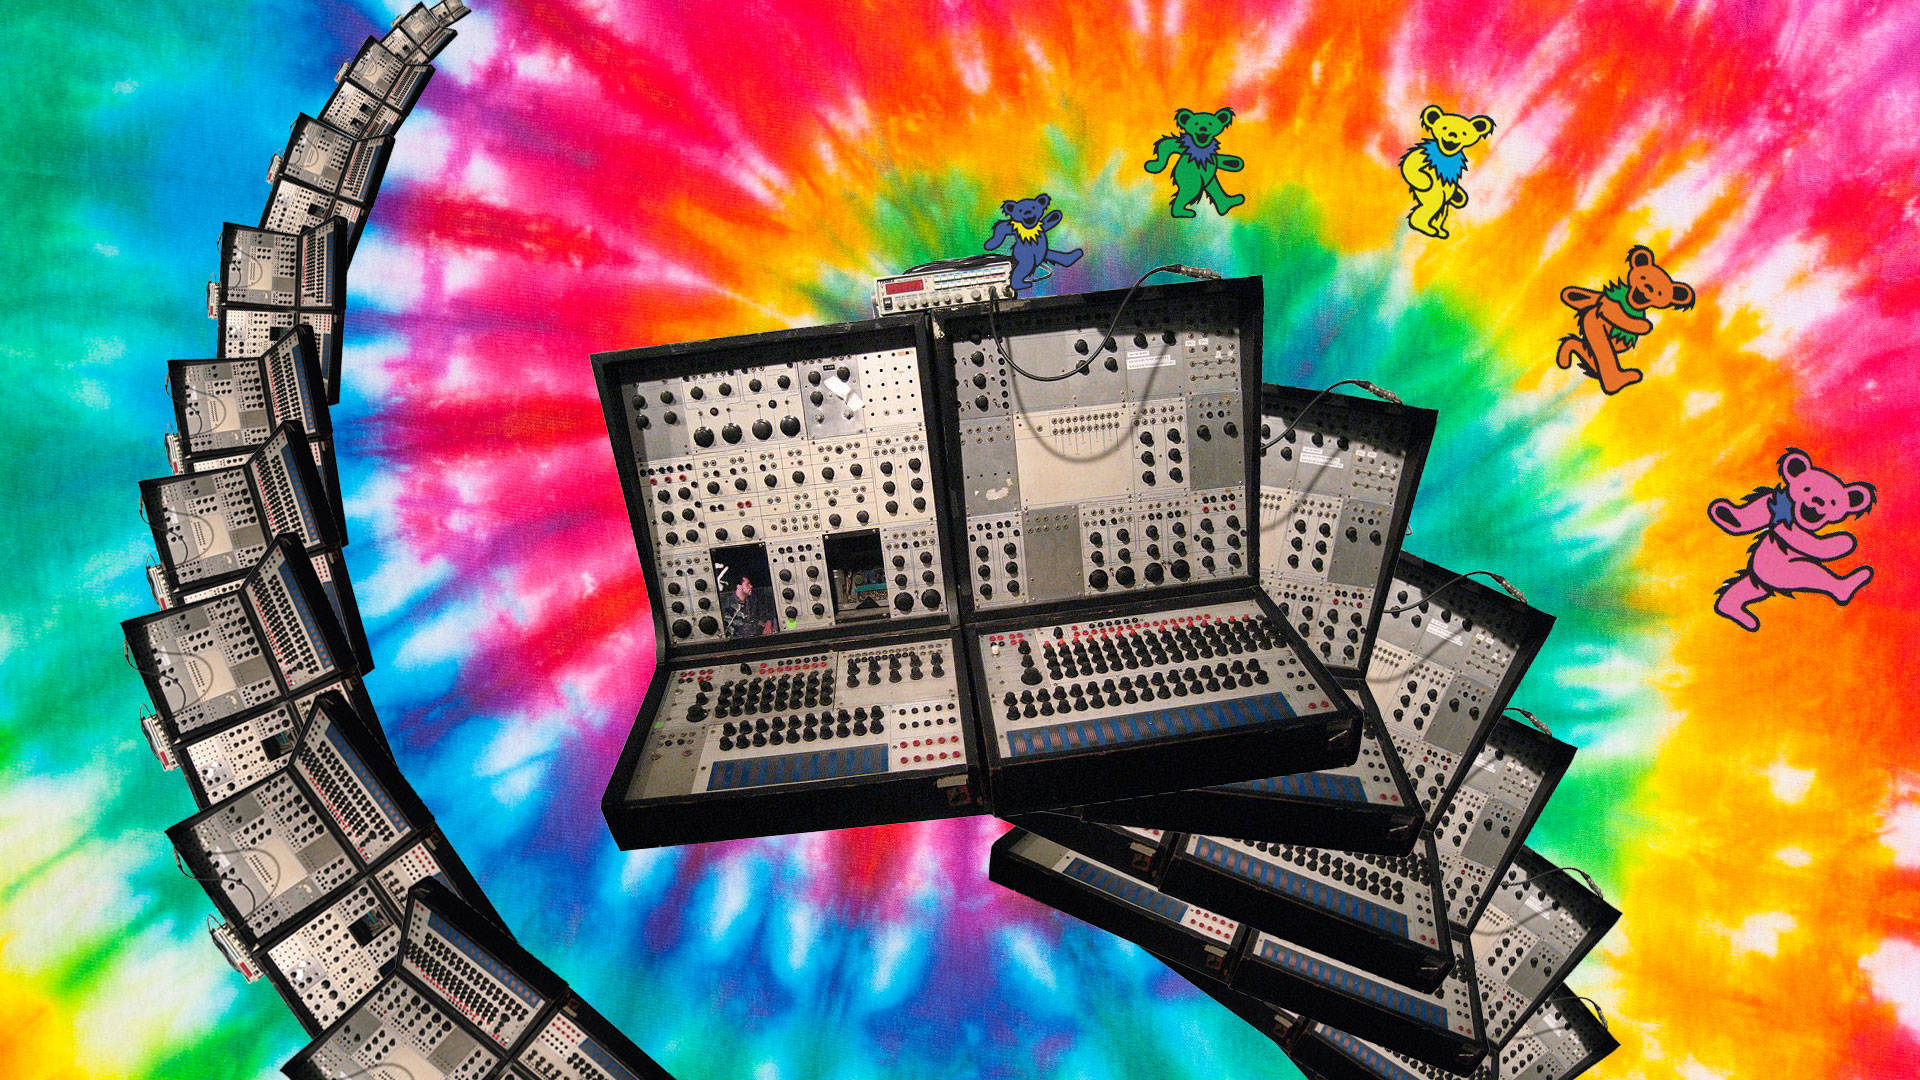 KPIX engineer Eliot Curtis found himself tripping on acid after cleaning a vintage synthesizer from the 1960s. Images: Wikimedia Commons, Shutterstock, Collage: Sarah Hotchkiss